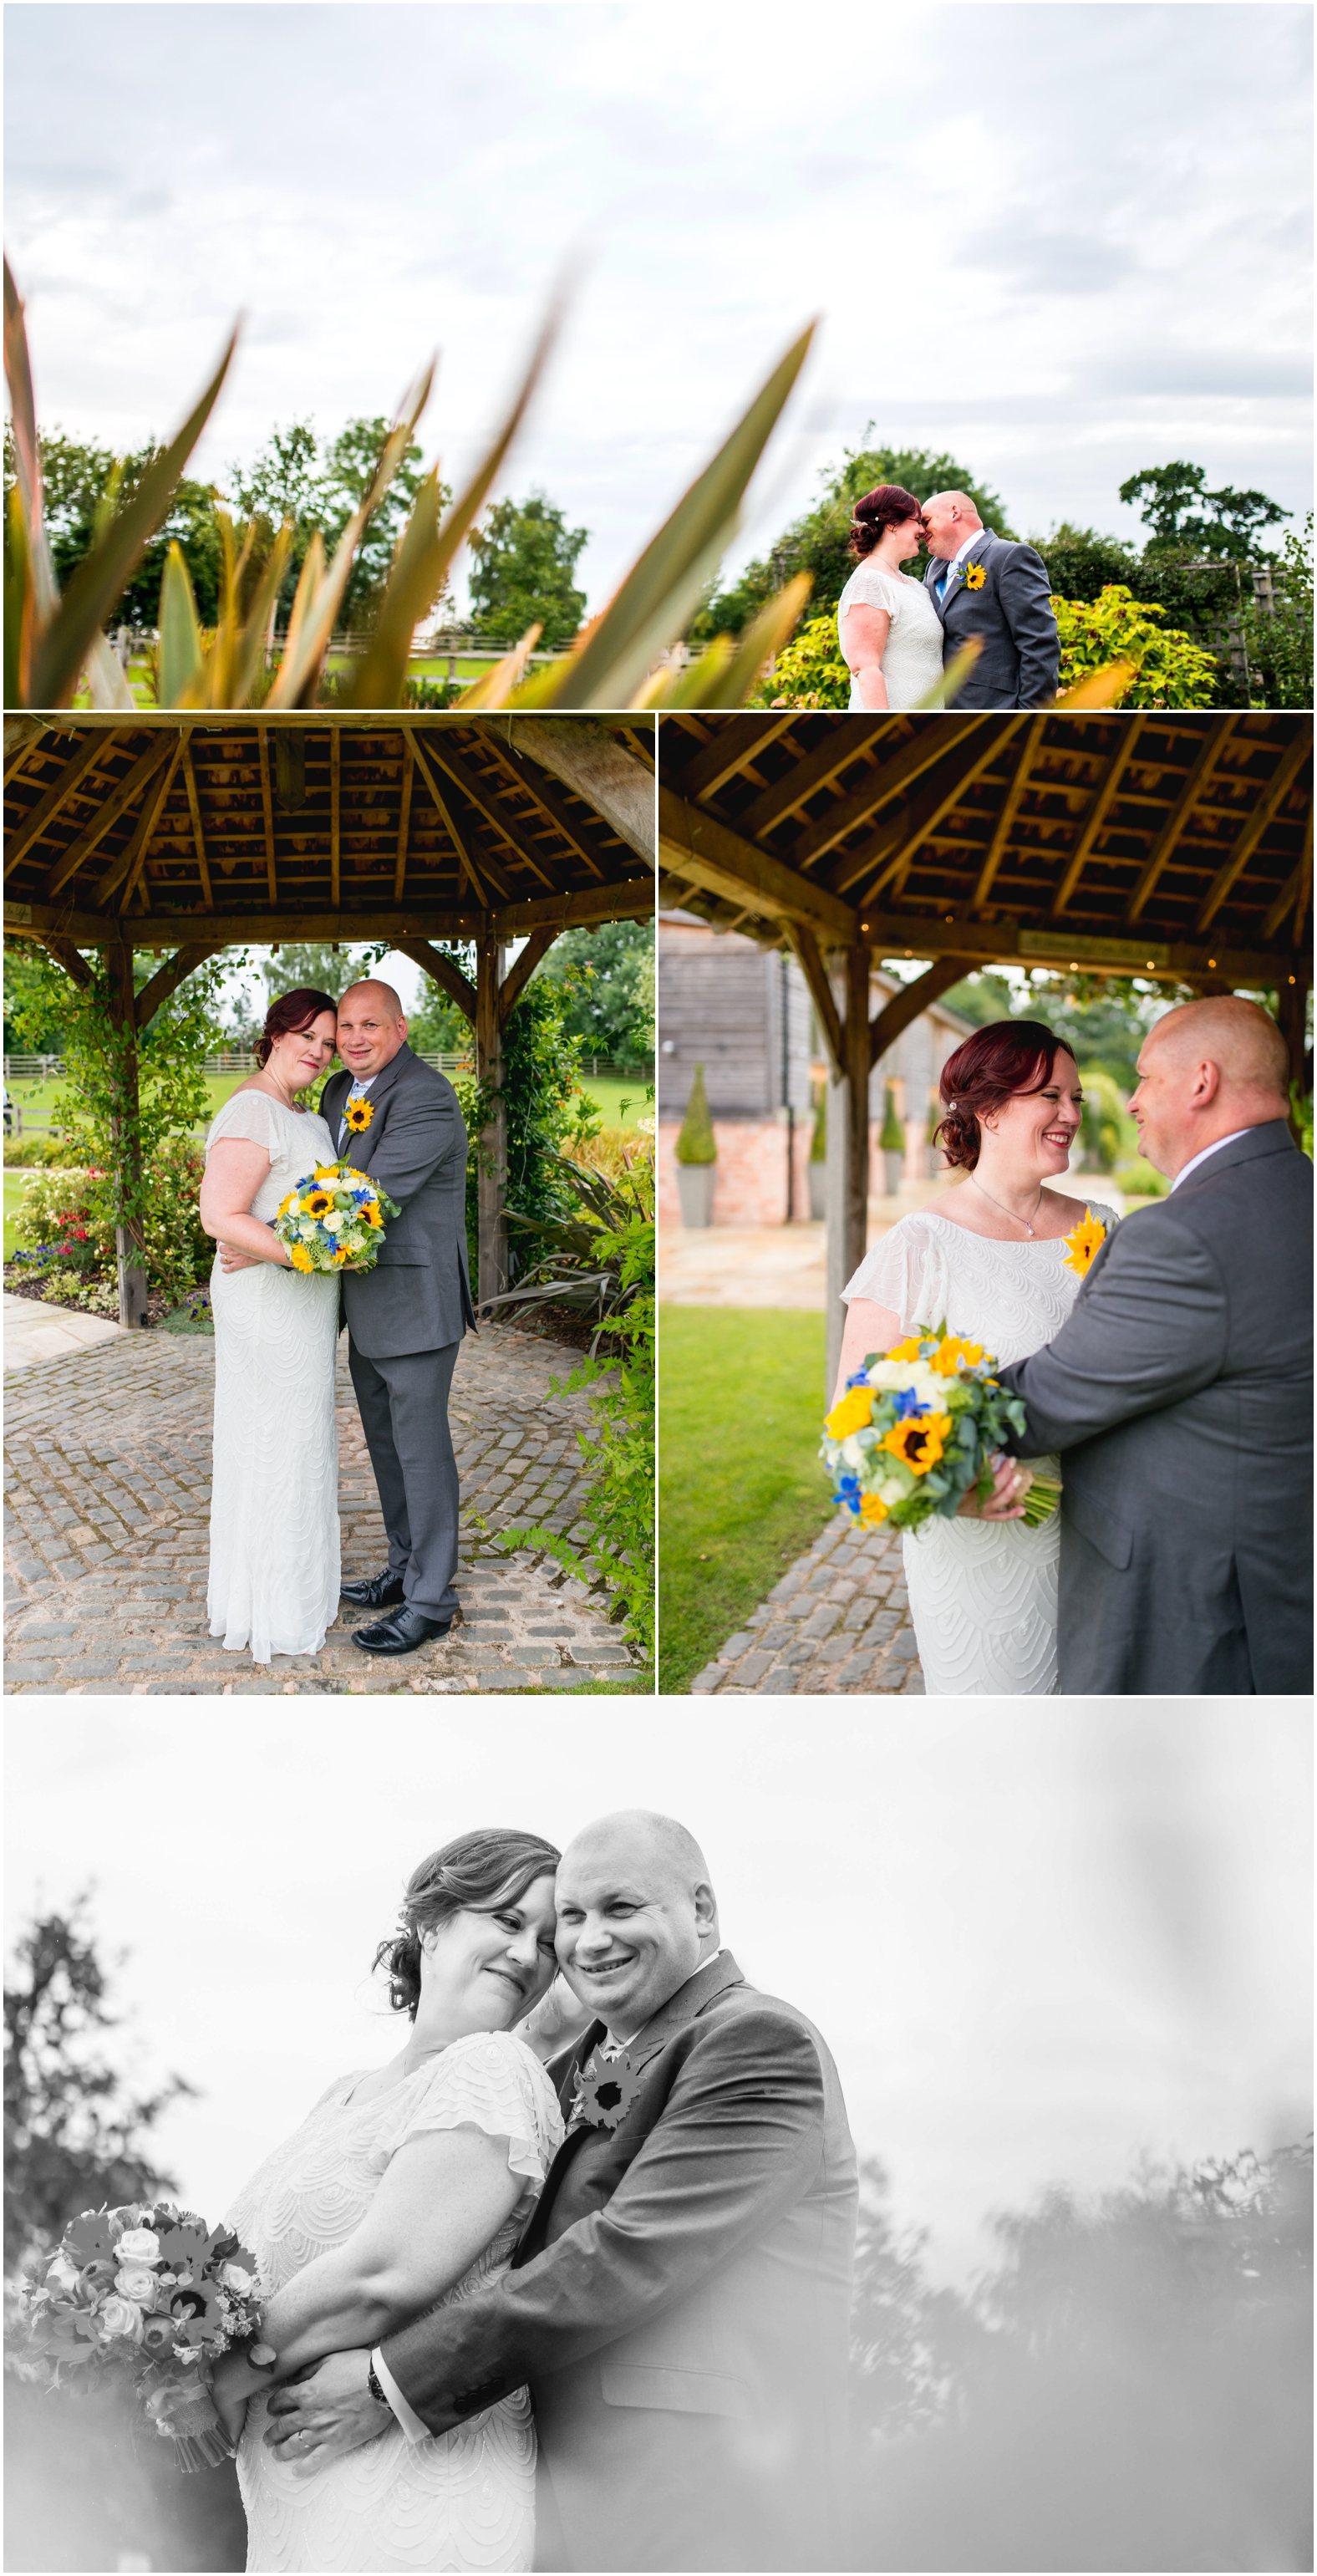 Mythe Barn Wedding with sunflower theme, photos by Lisa Carpenter Photography, West Midlands based photographer in Sutton Coldfield